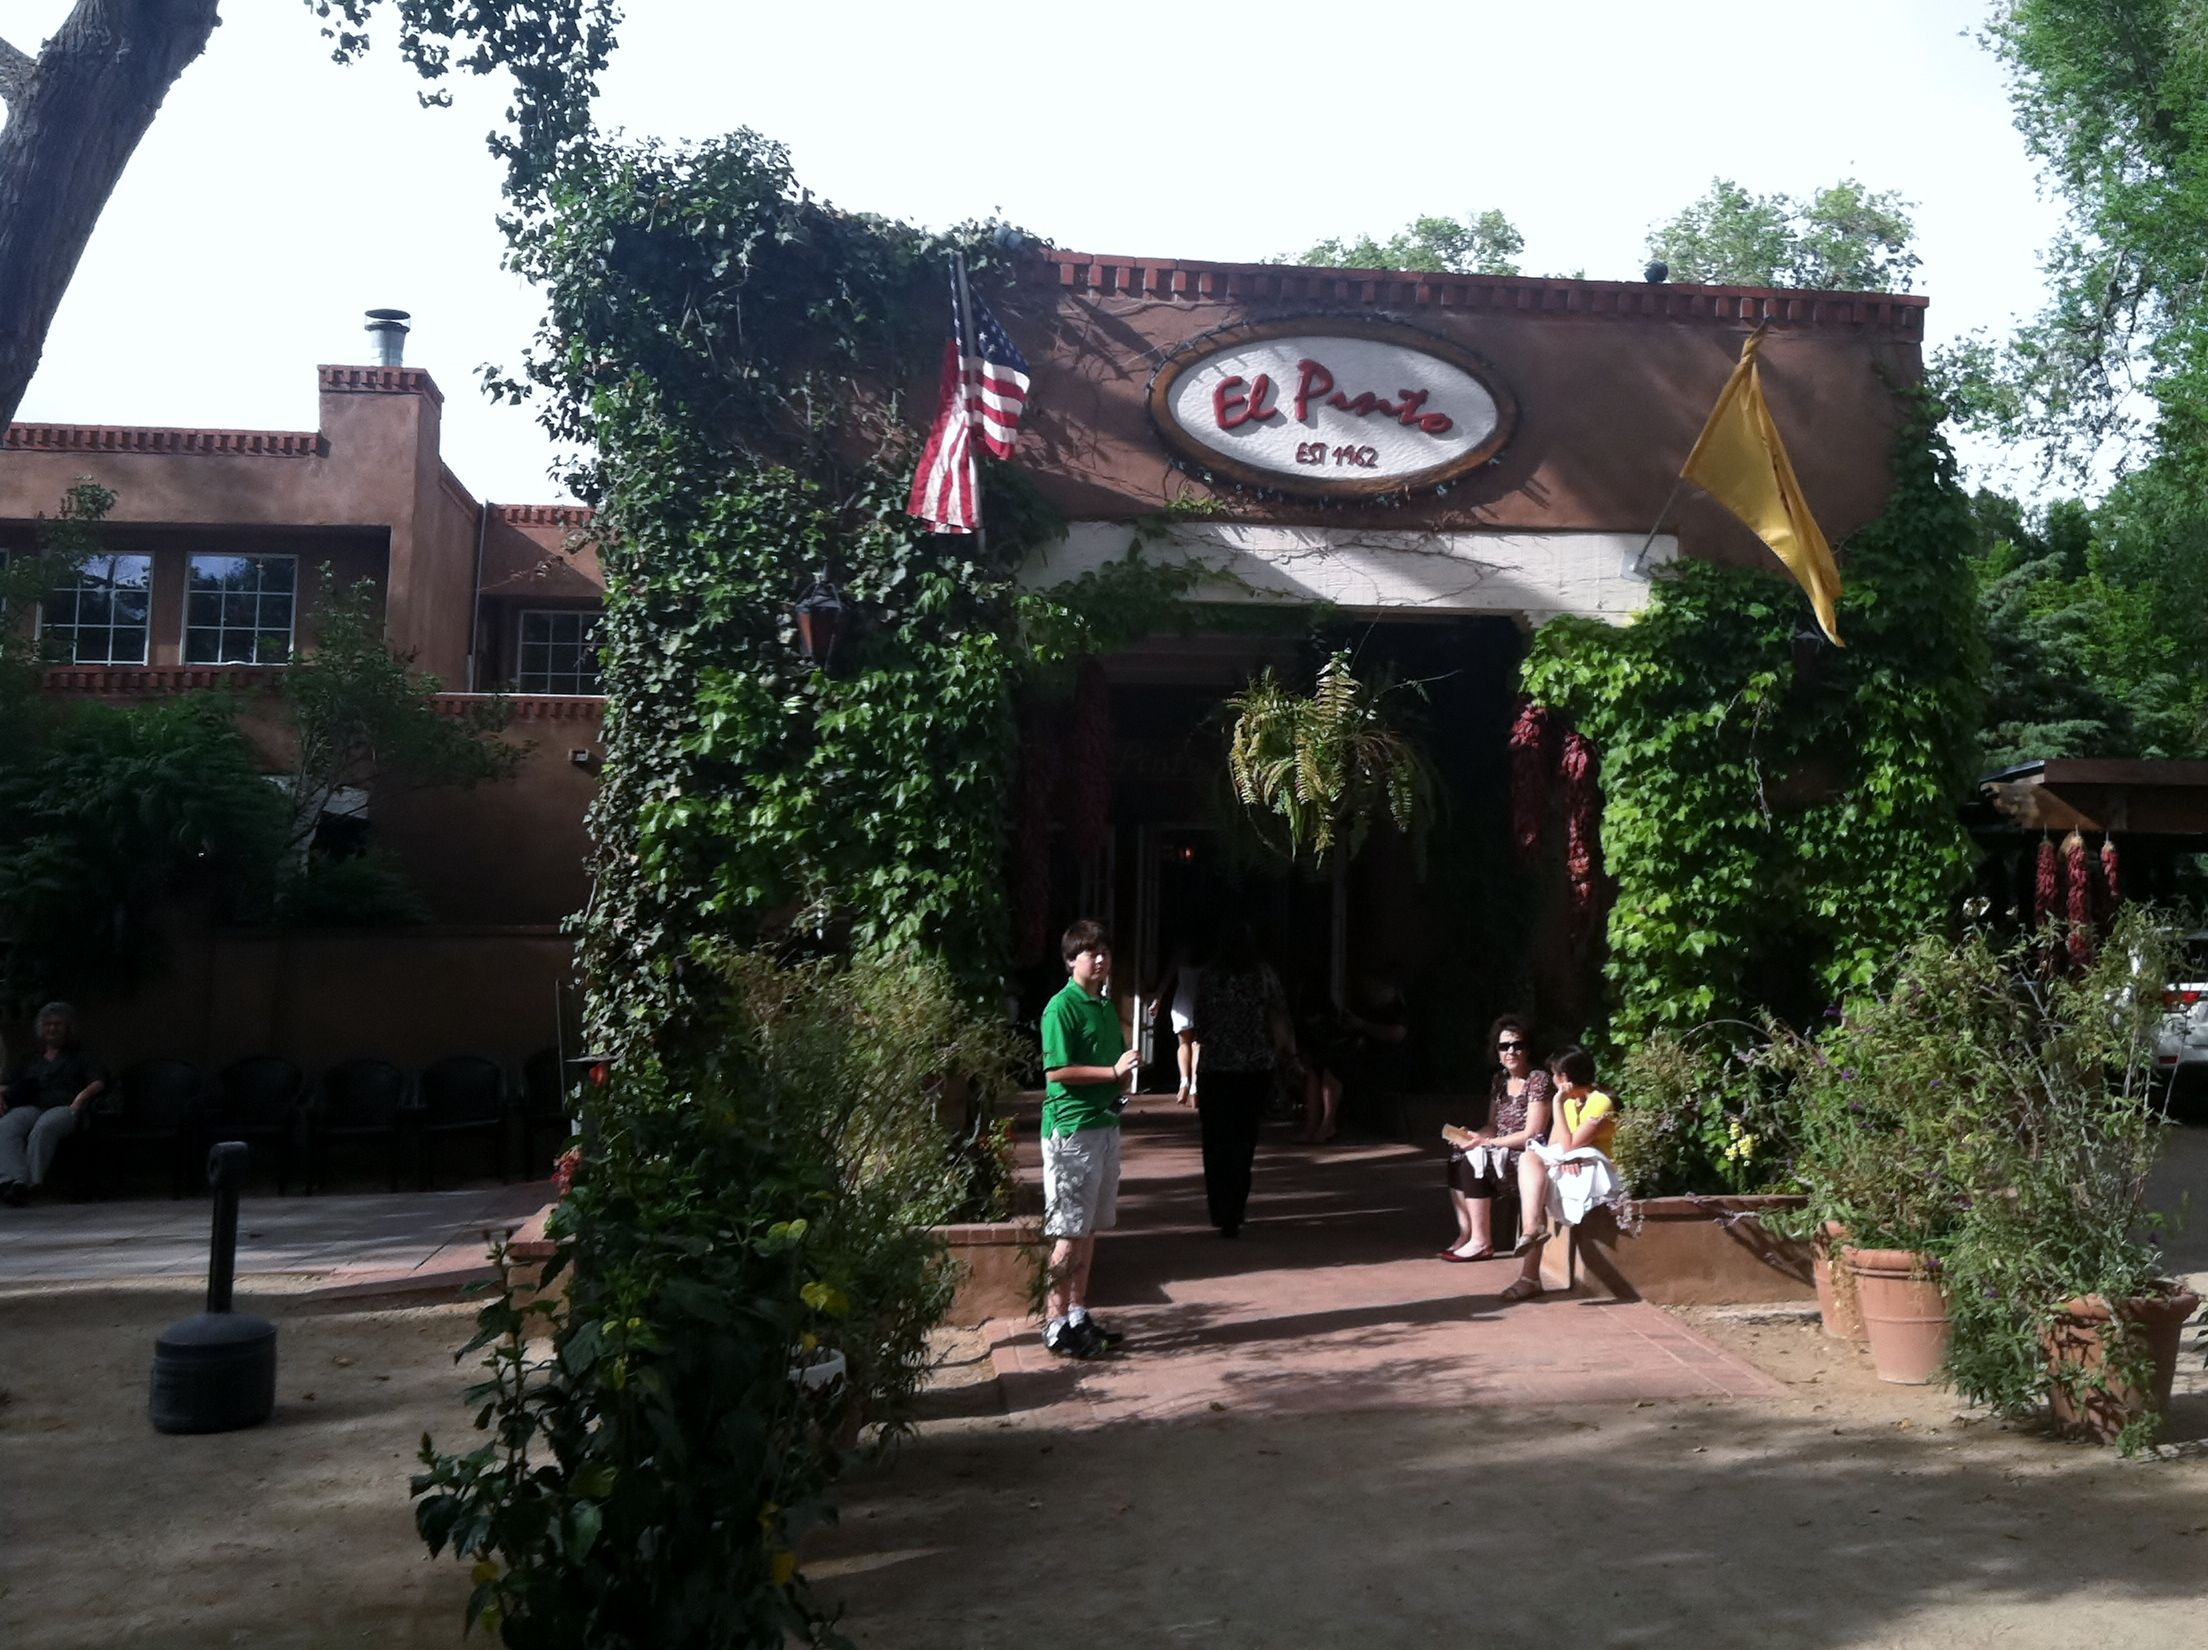 El Patio   Albuquerque, NM   One Of The Largest Mexican Restaurants I Have  Been